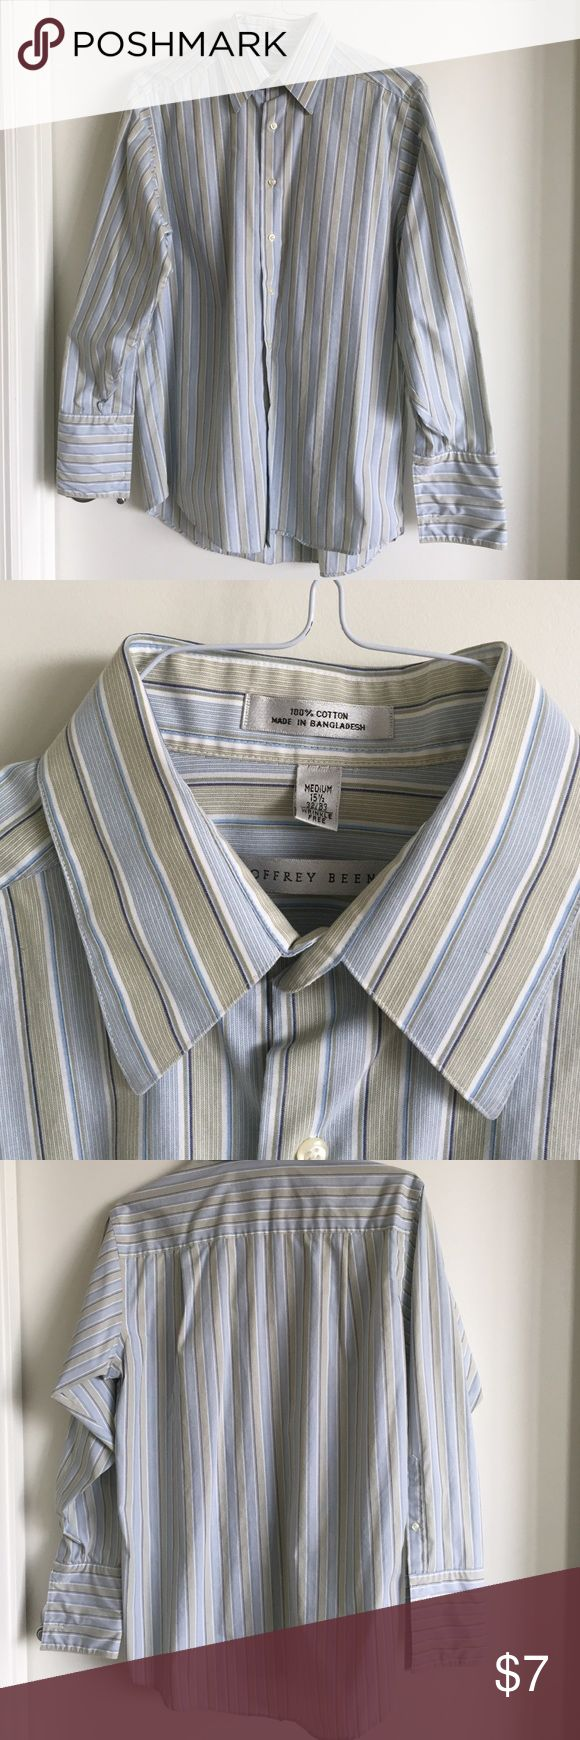 Geoffrey Beene Men's Dress Shirt Medium Beautiful, blue & green striped button up dress shirt. Worn for school play - buttons on cuff removed (hence the great price!). 100% cotton. Machine wash warm. 15 1/2 x 32/33 Geoffrey Beene Shirts Dress Shirts